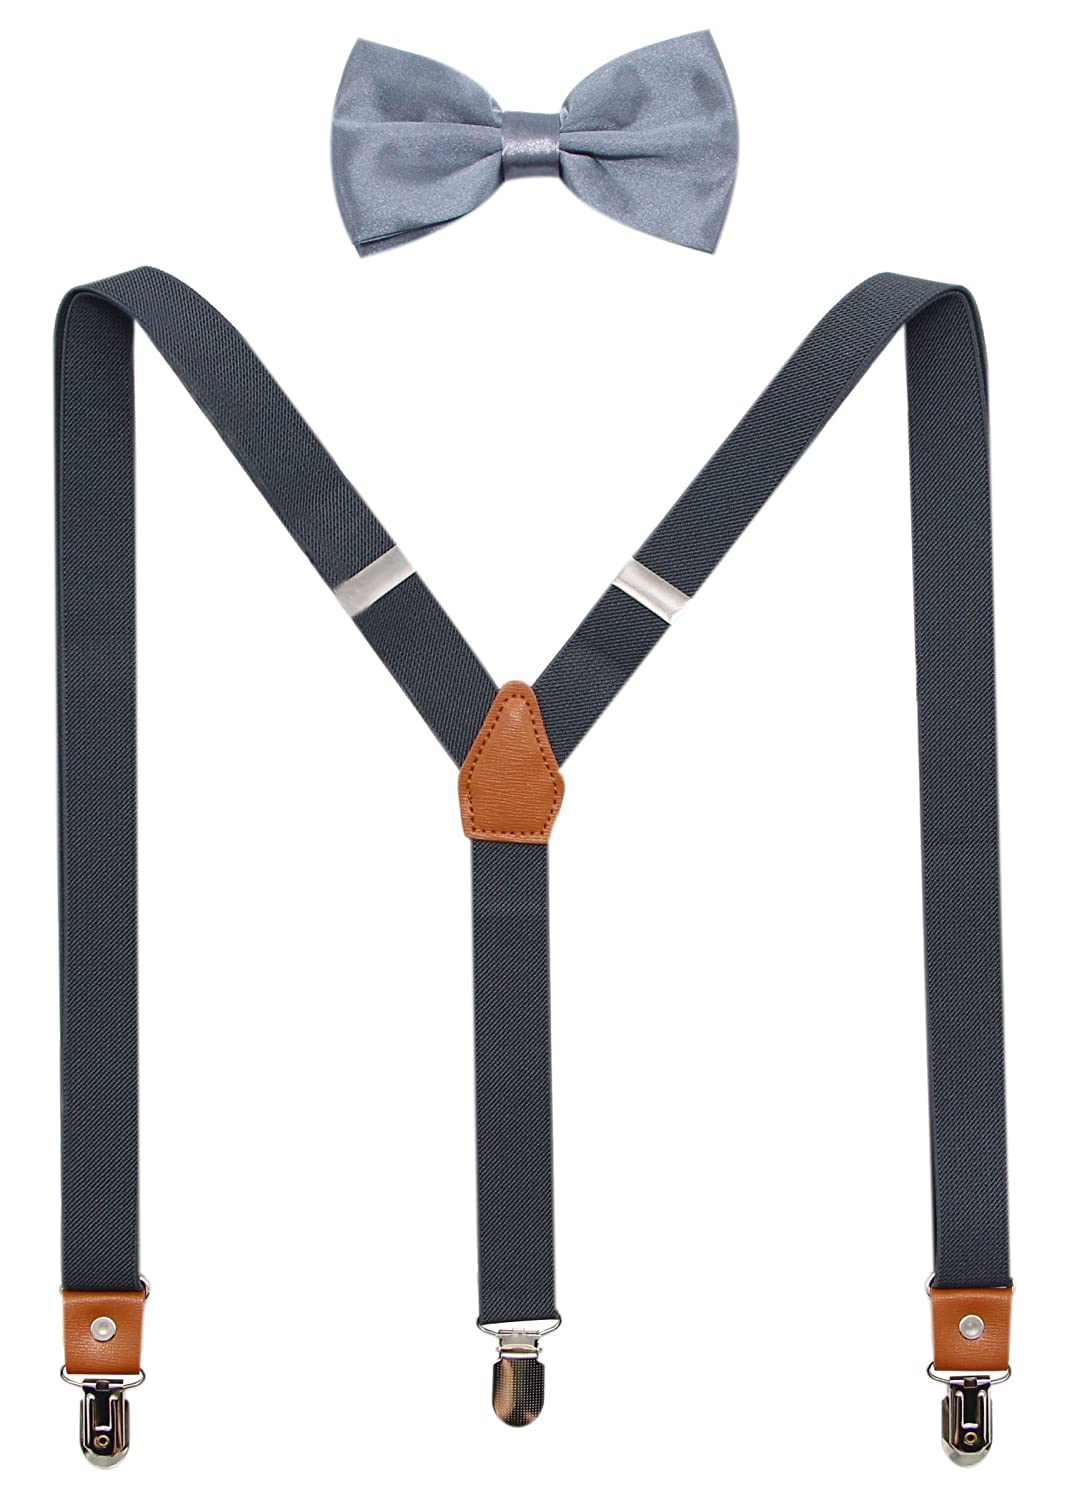 Casual And Formal Suspenders And Pre-Tied Bowtie Set For Boys And Men By JAIFEI